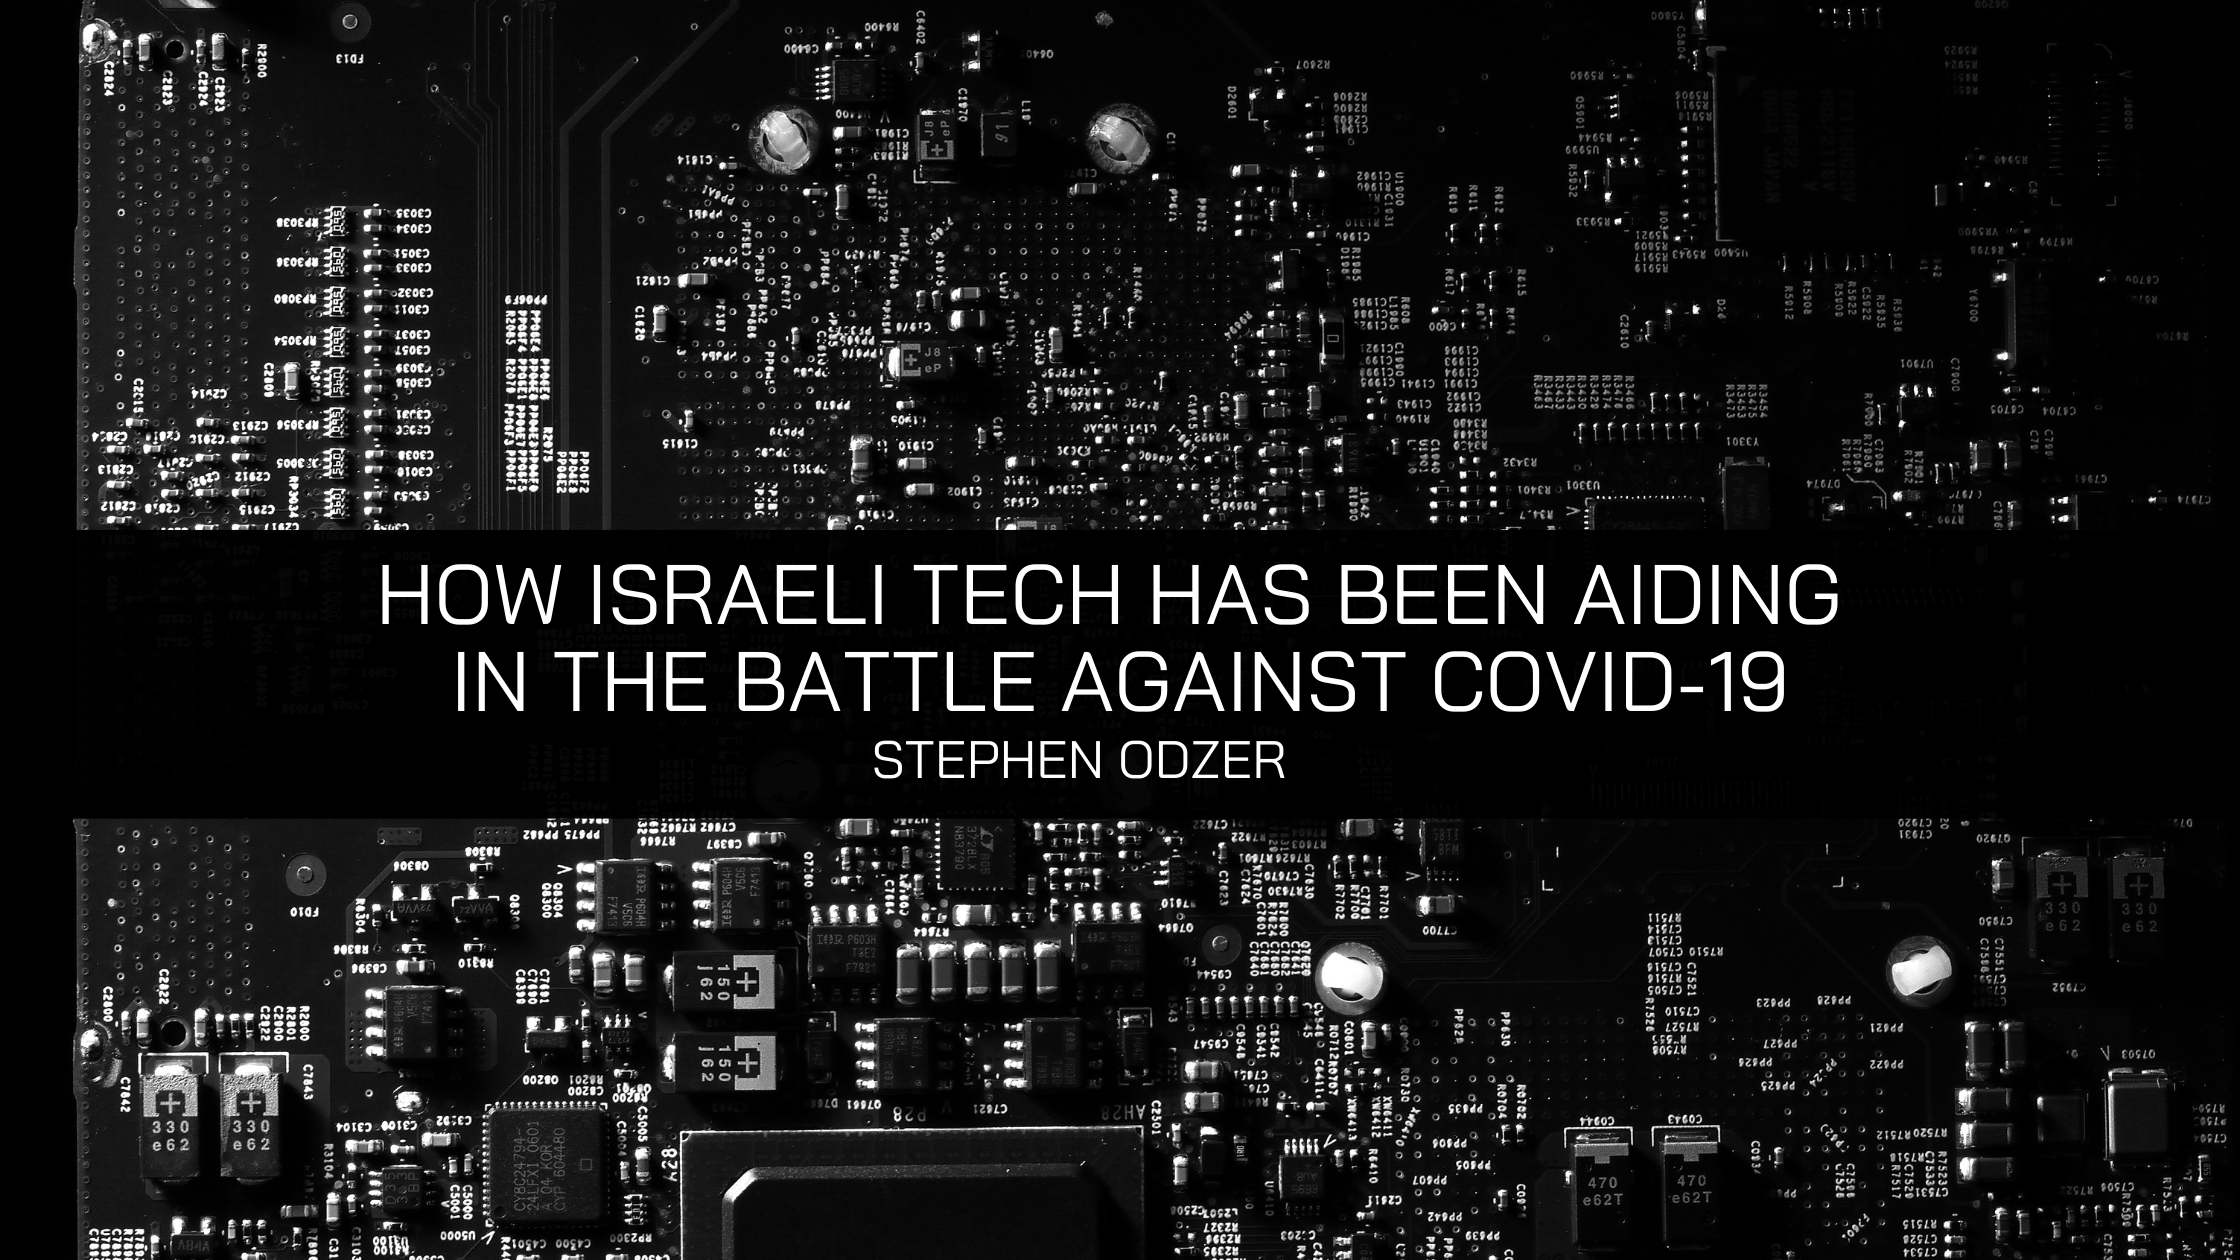 Stephen Odzer Discusses How Israeli Tech Has Been Aiding in the Battle Against COVID-19